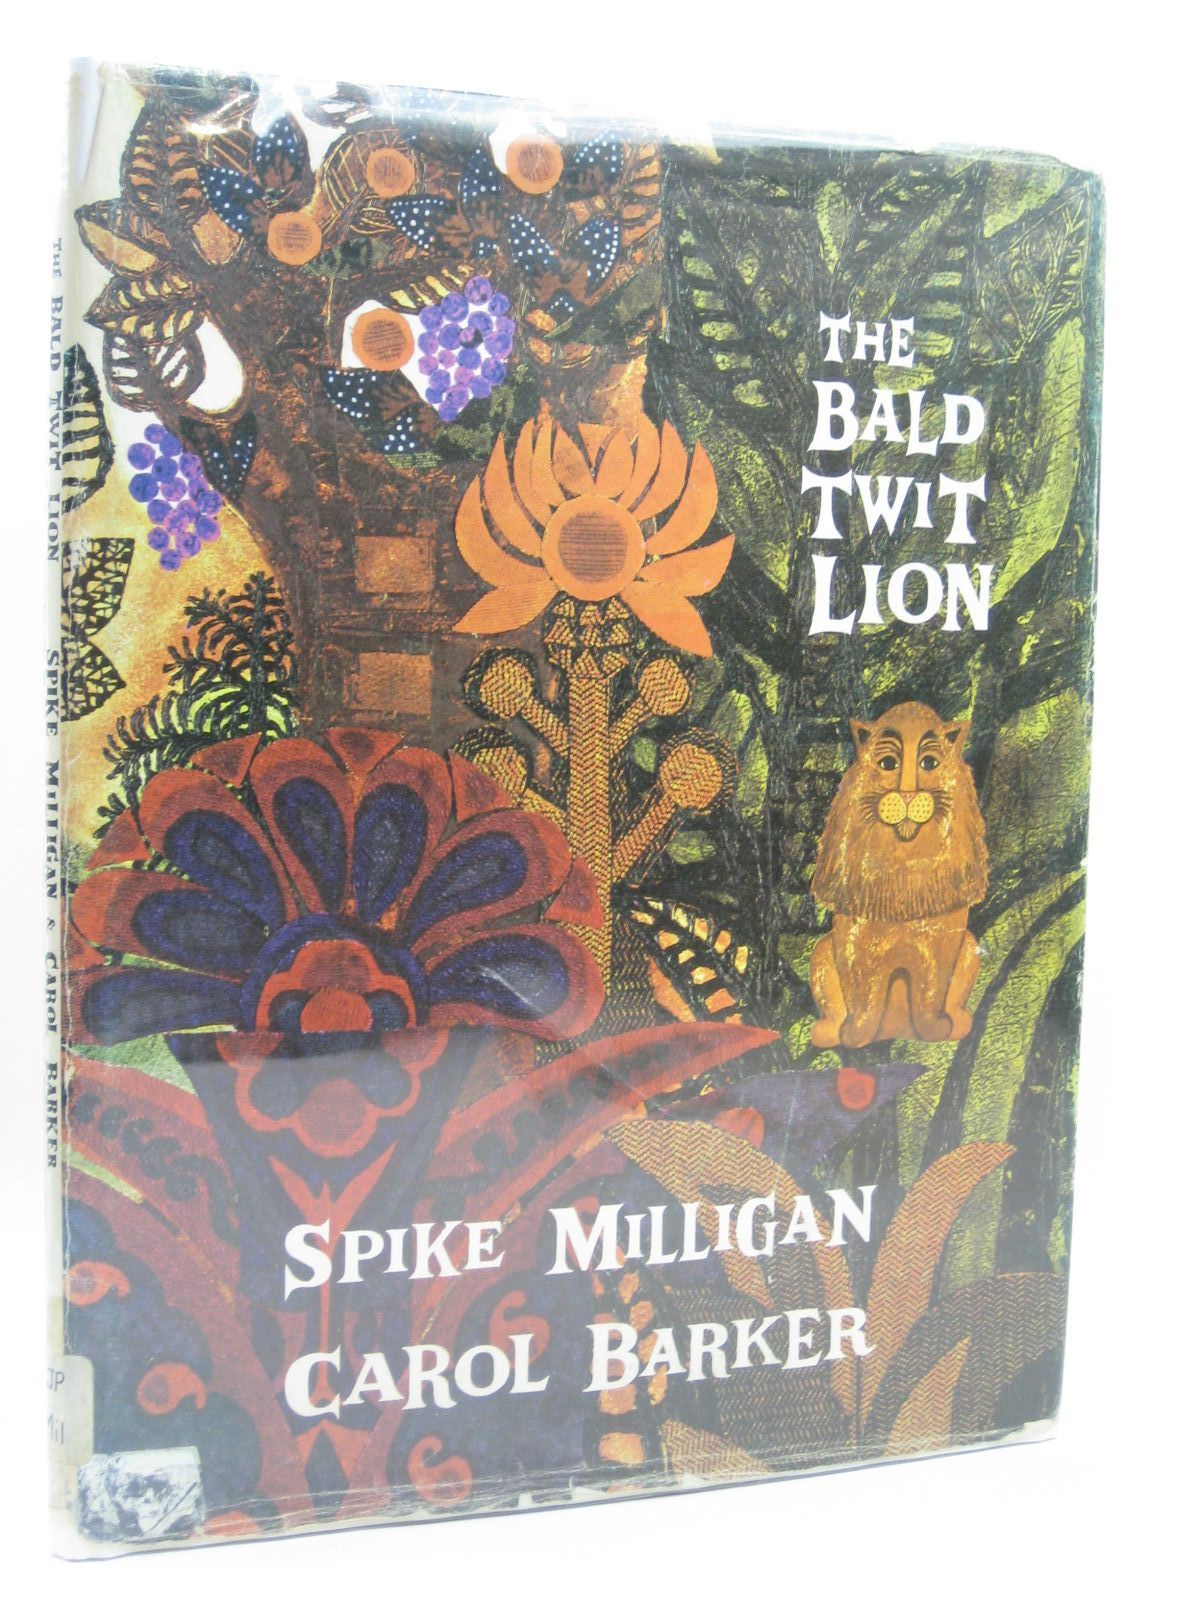 Photo of THE BALD TWIT LION written by Milligan, Spike illustrated by Barker, Carol published by Dennis Dobson Books Ltd. (STOCK CODE: 1406140)  for sale by Stella & Rose's Books